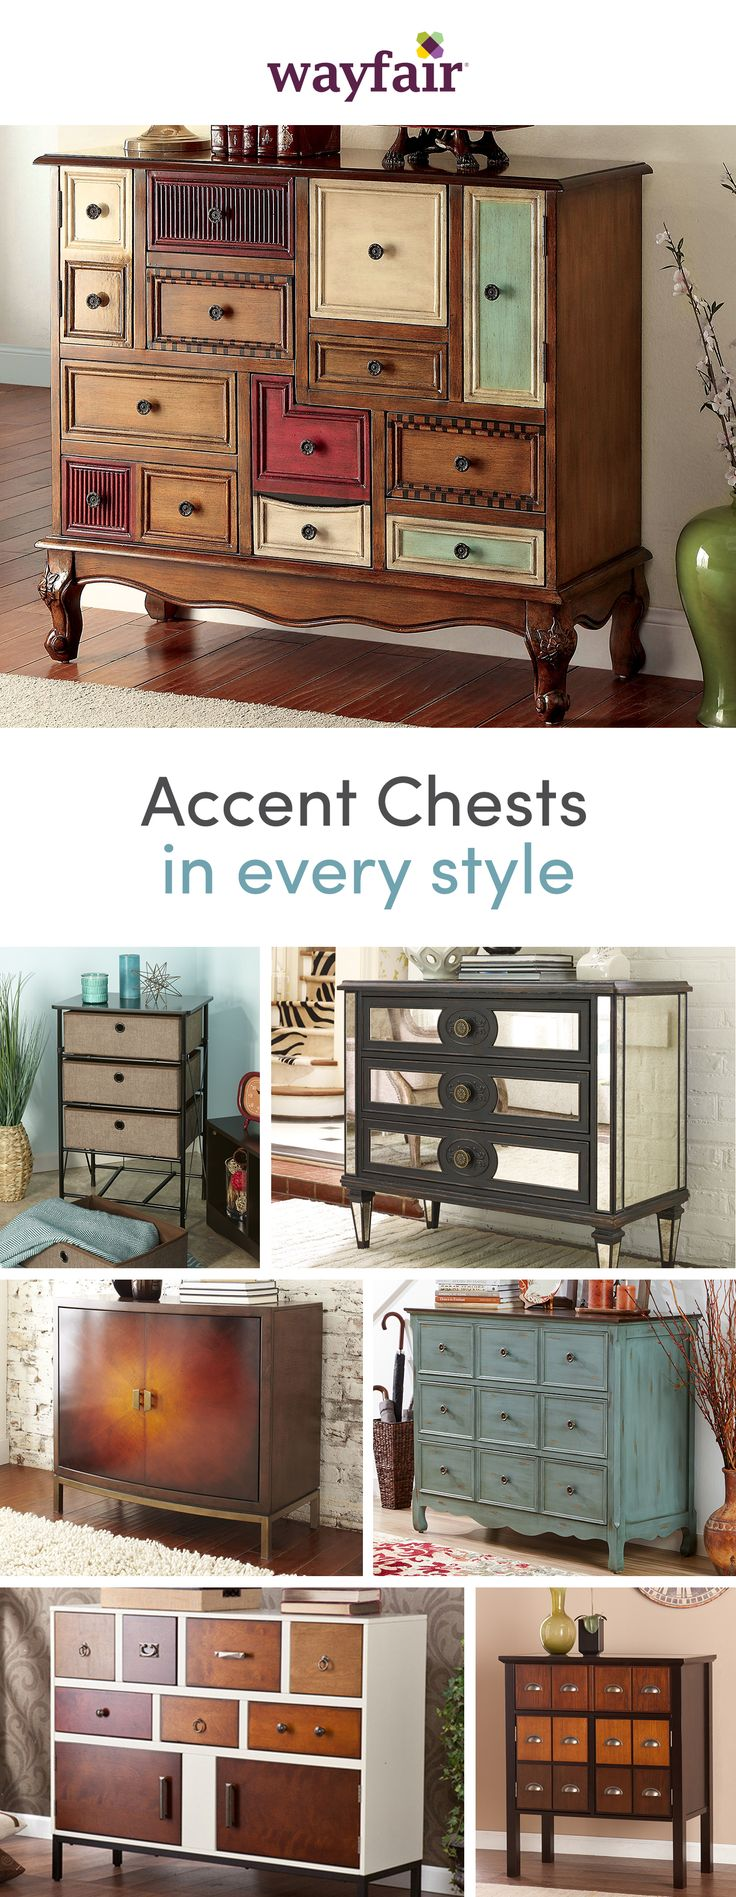 Storage, meet style. The perfect piece of home décor, accent chests are the - The 95 Best Furniture Images On Pinterest Antique Furniture